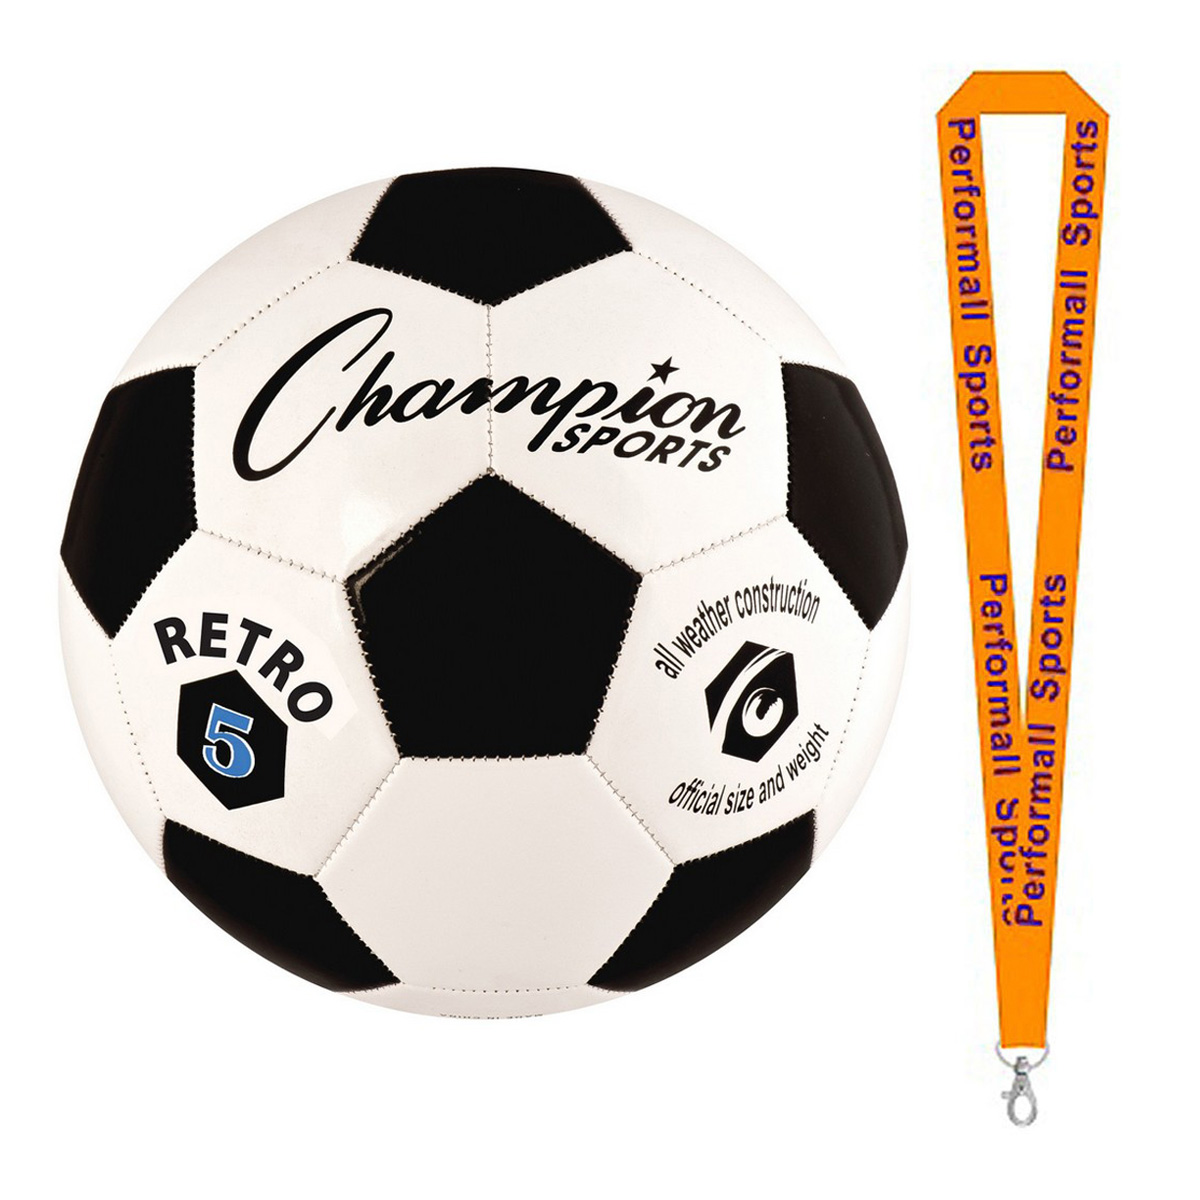 Champion Sports Bundle: Retro Soccer Ball Black / White Assorted Colors and Sizes with 1 Performall Lanyard